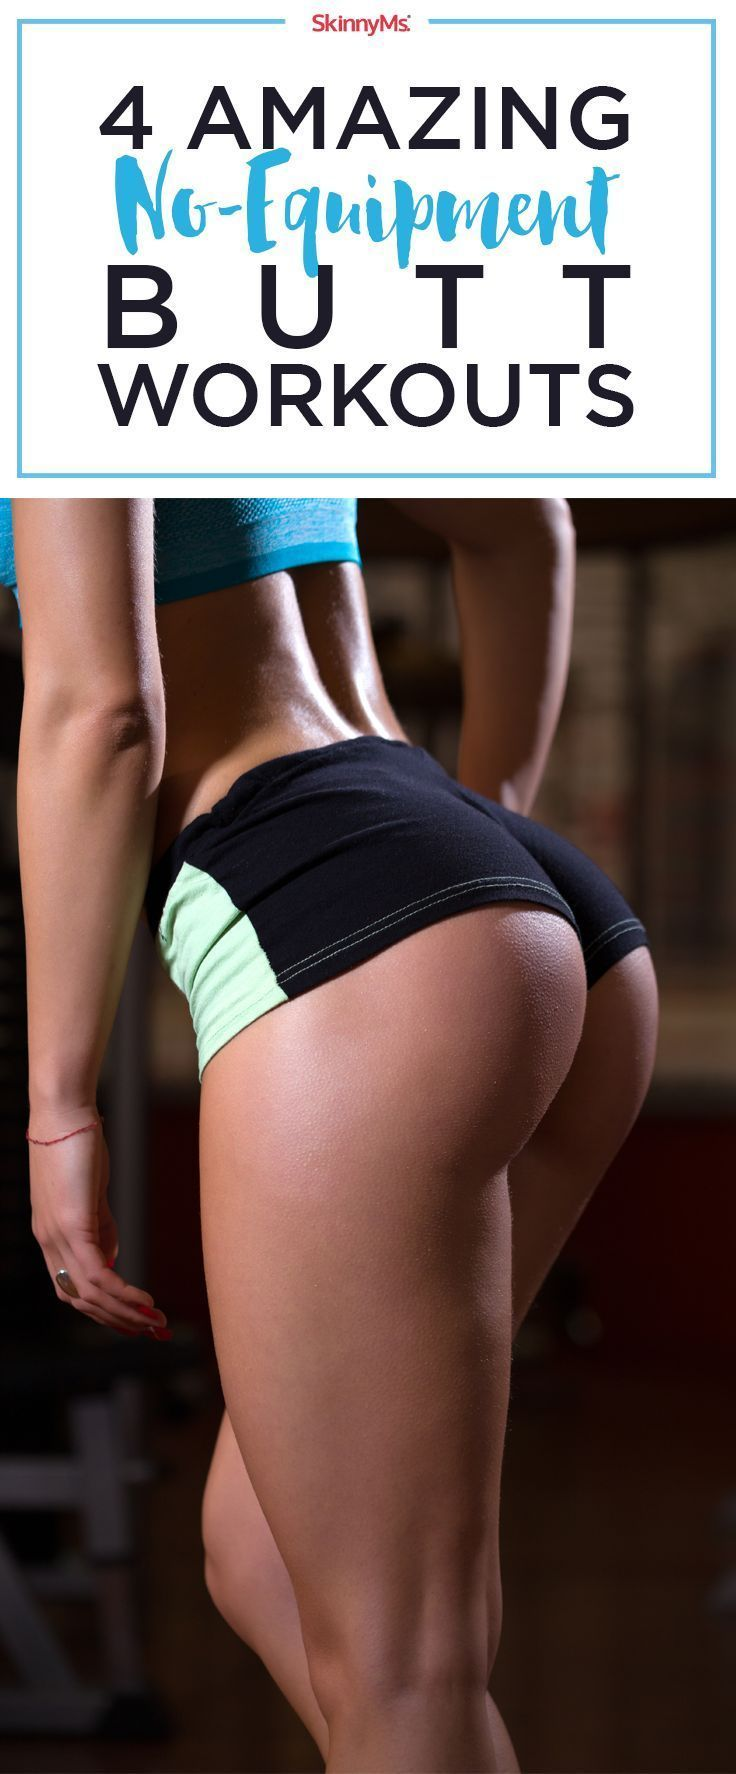 Tone and Tighten your butt with these 4 Amazing No-Equipment Butt Workouts!